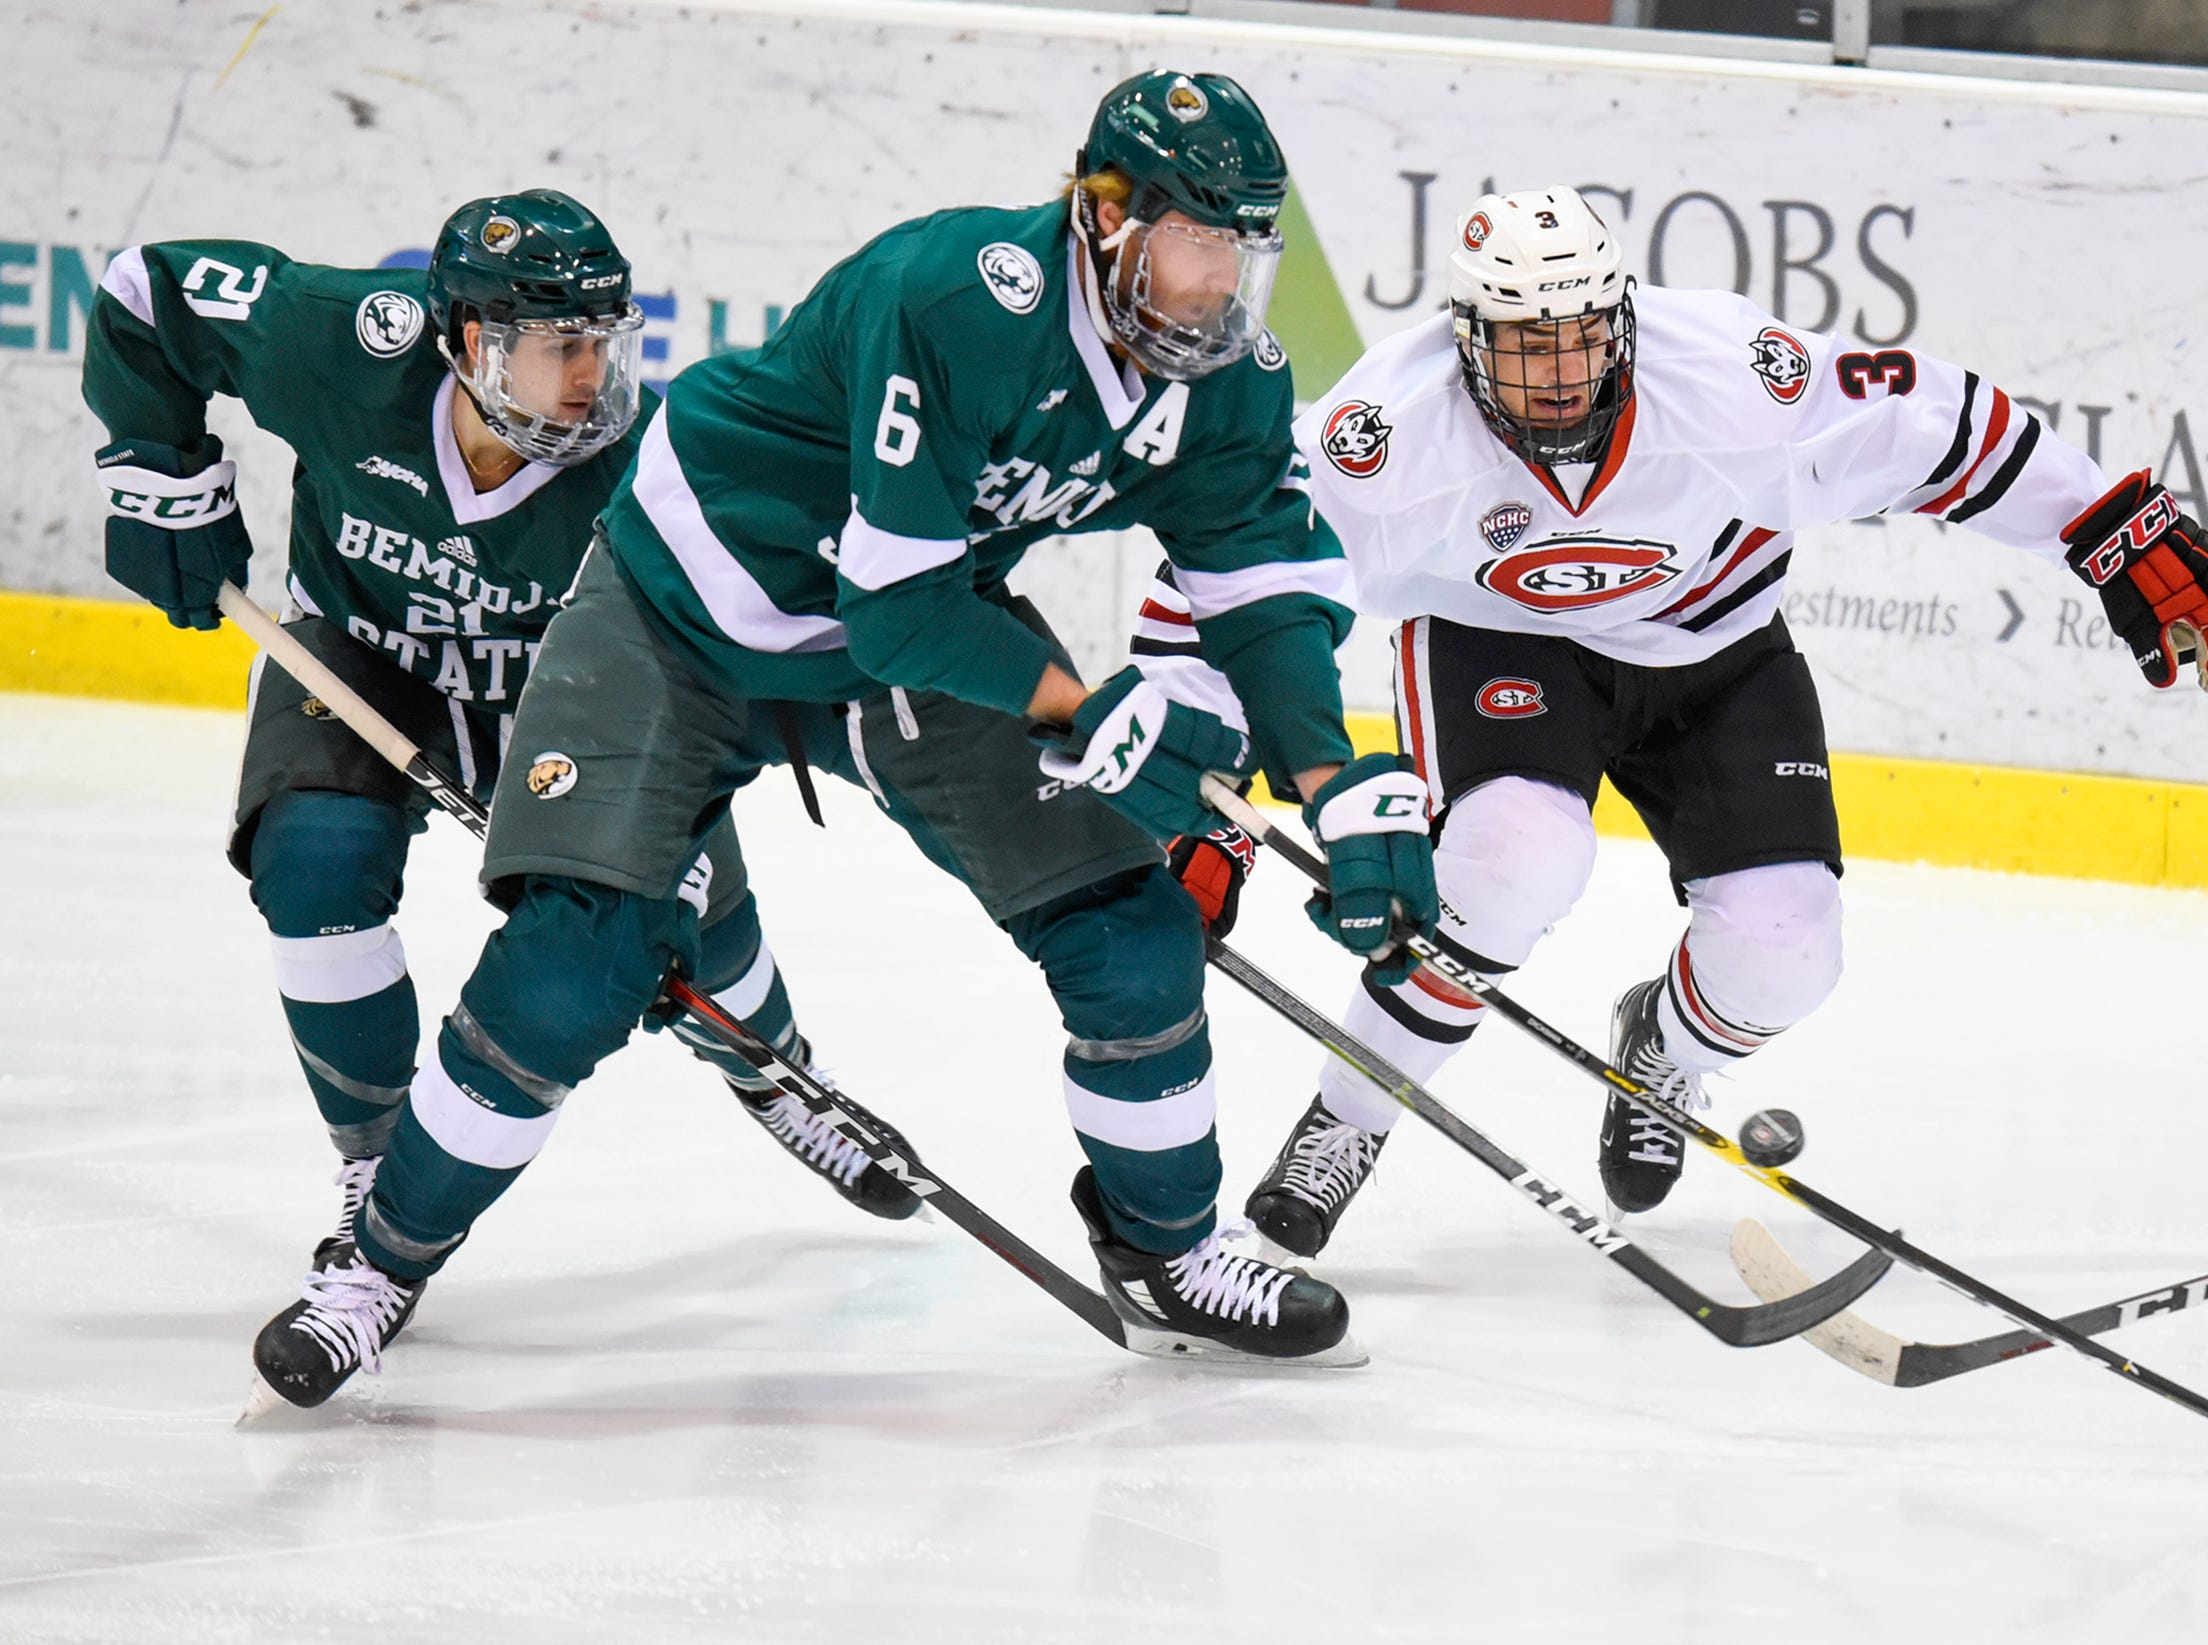 St. Cloud State's Jack Poehling and Jay Dickman of Bemidji State concentrate on the puck during the first period of the Friday, Nov. 16, game at the Herb Brooks National Hockey Center in St. Cloud.